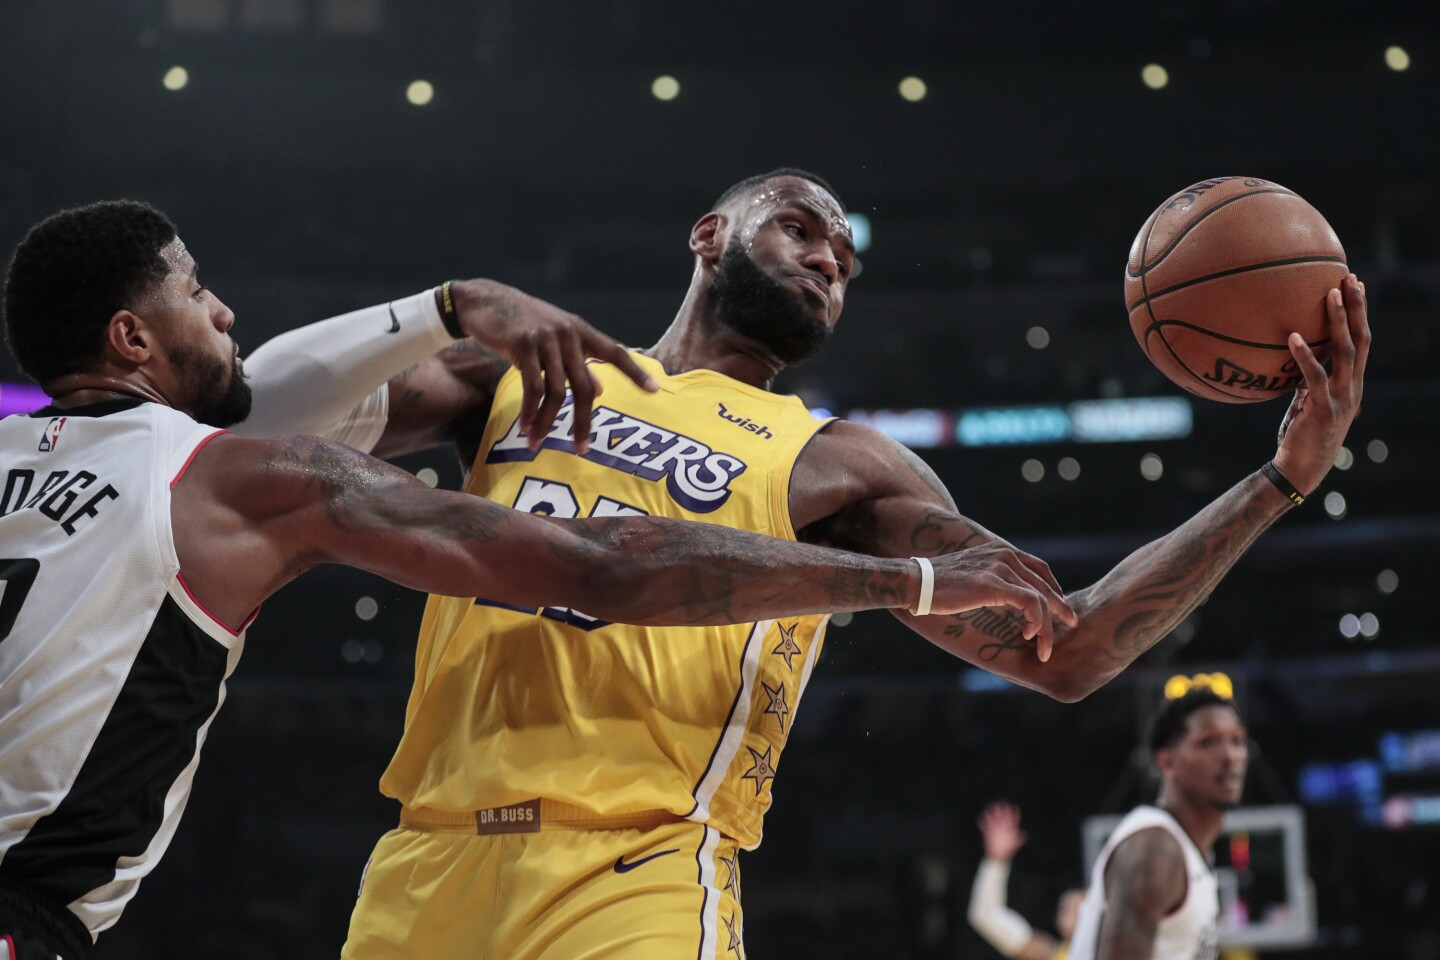 LOS ANGELES, CA, WEDNESDAY, DECEMBER 25, 2019 - Los Angeles Lakers forward LeBron James (23) controls a rebound against LA Clippers forward Paul George (13) during first half action at Staples Center. (Robert Gauthier/Los Angeles Times)